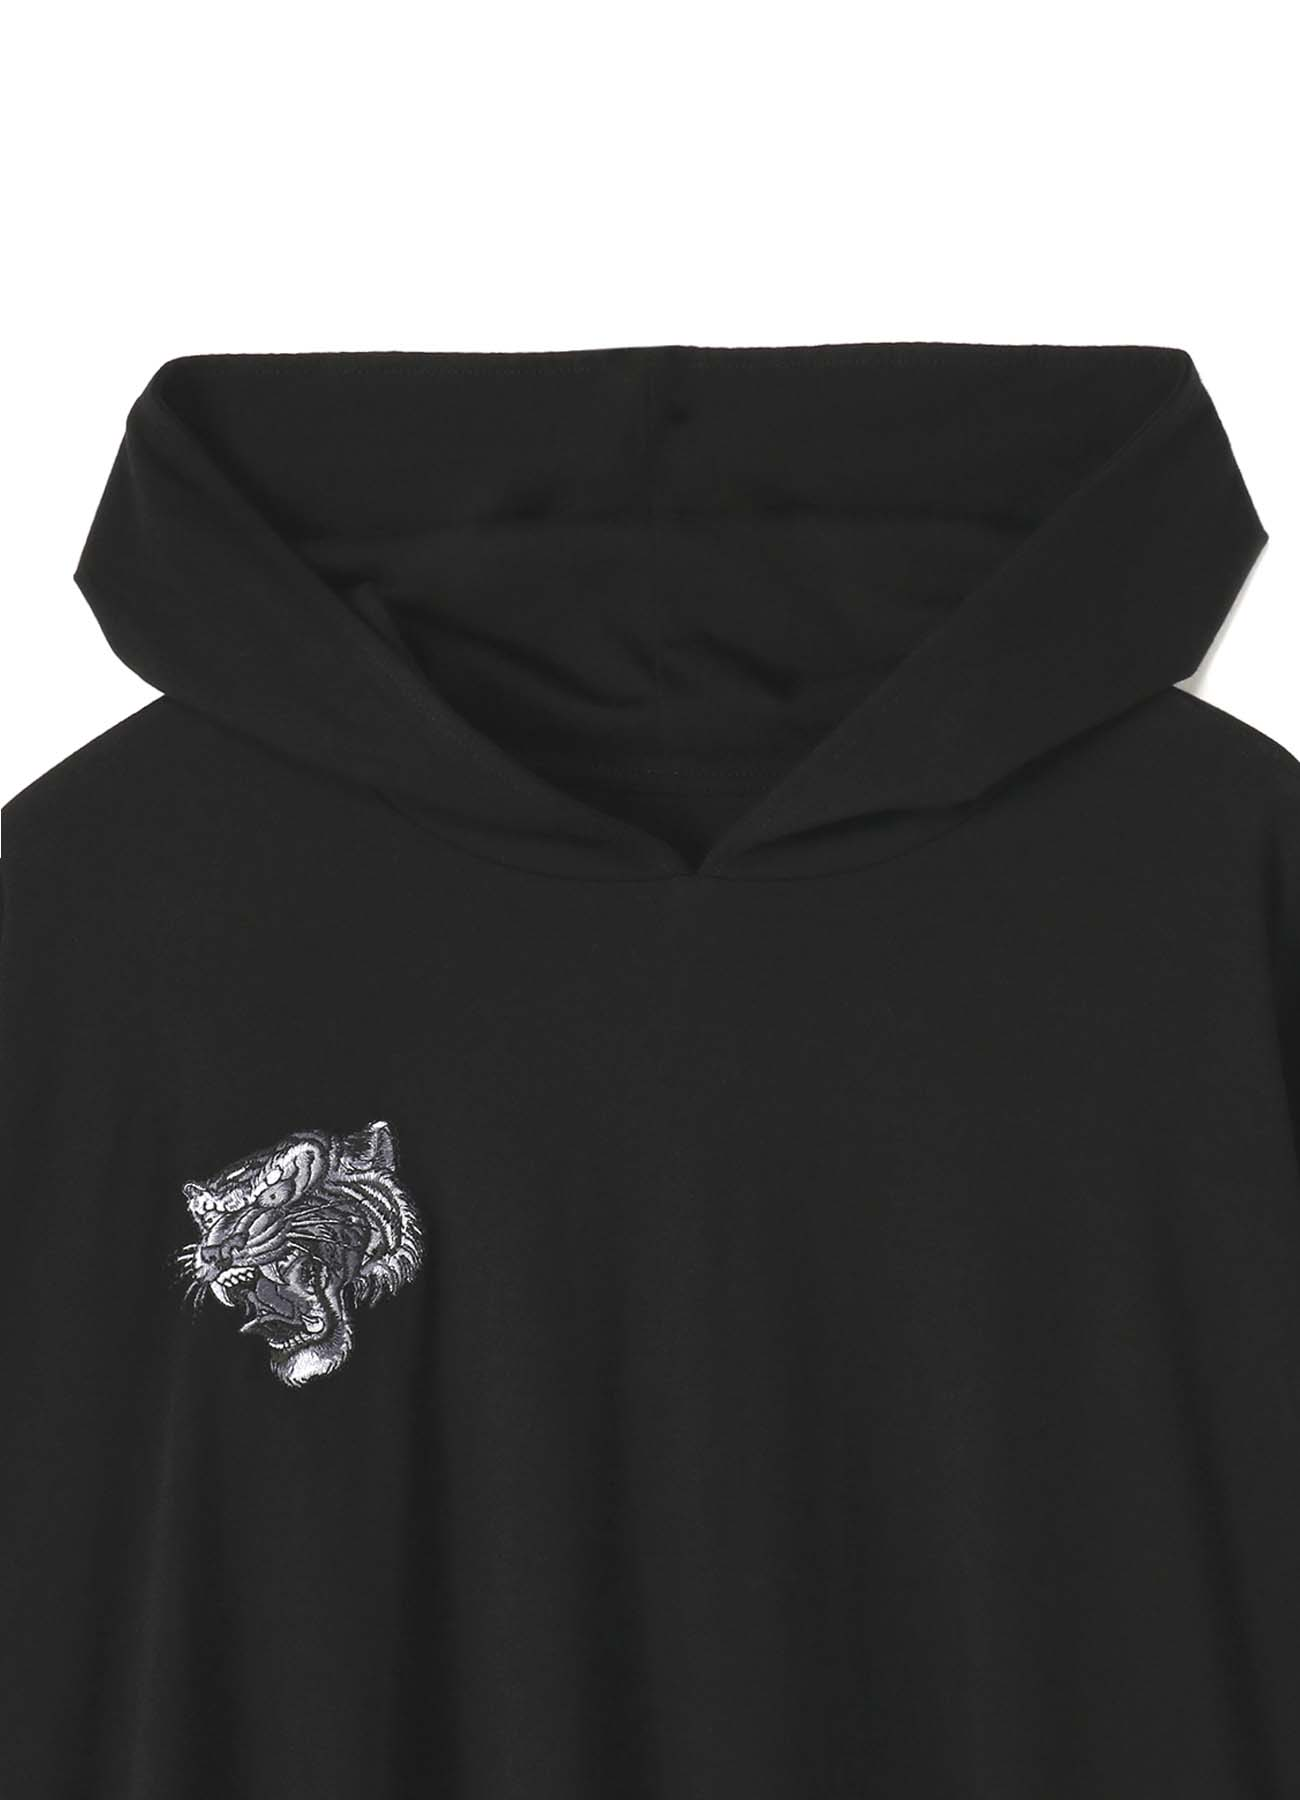 B/Cotton Embroidery Hoodie